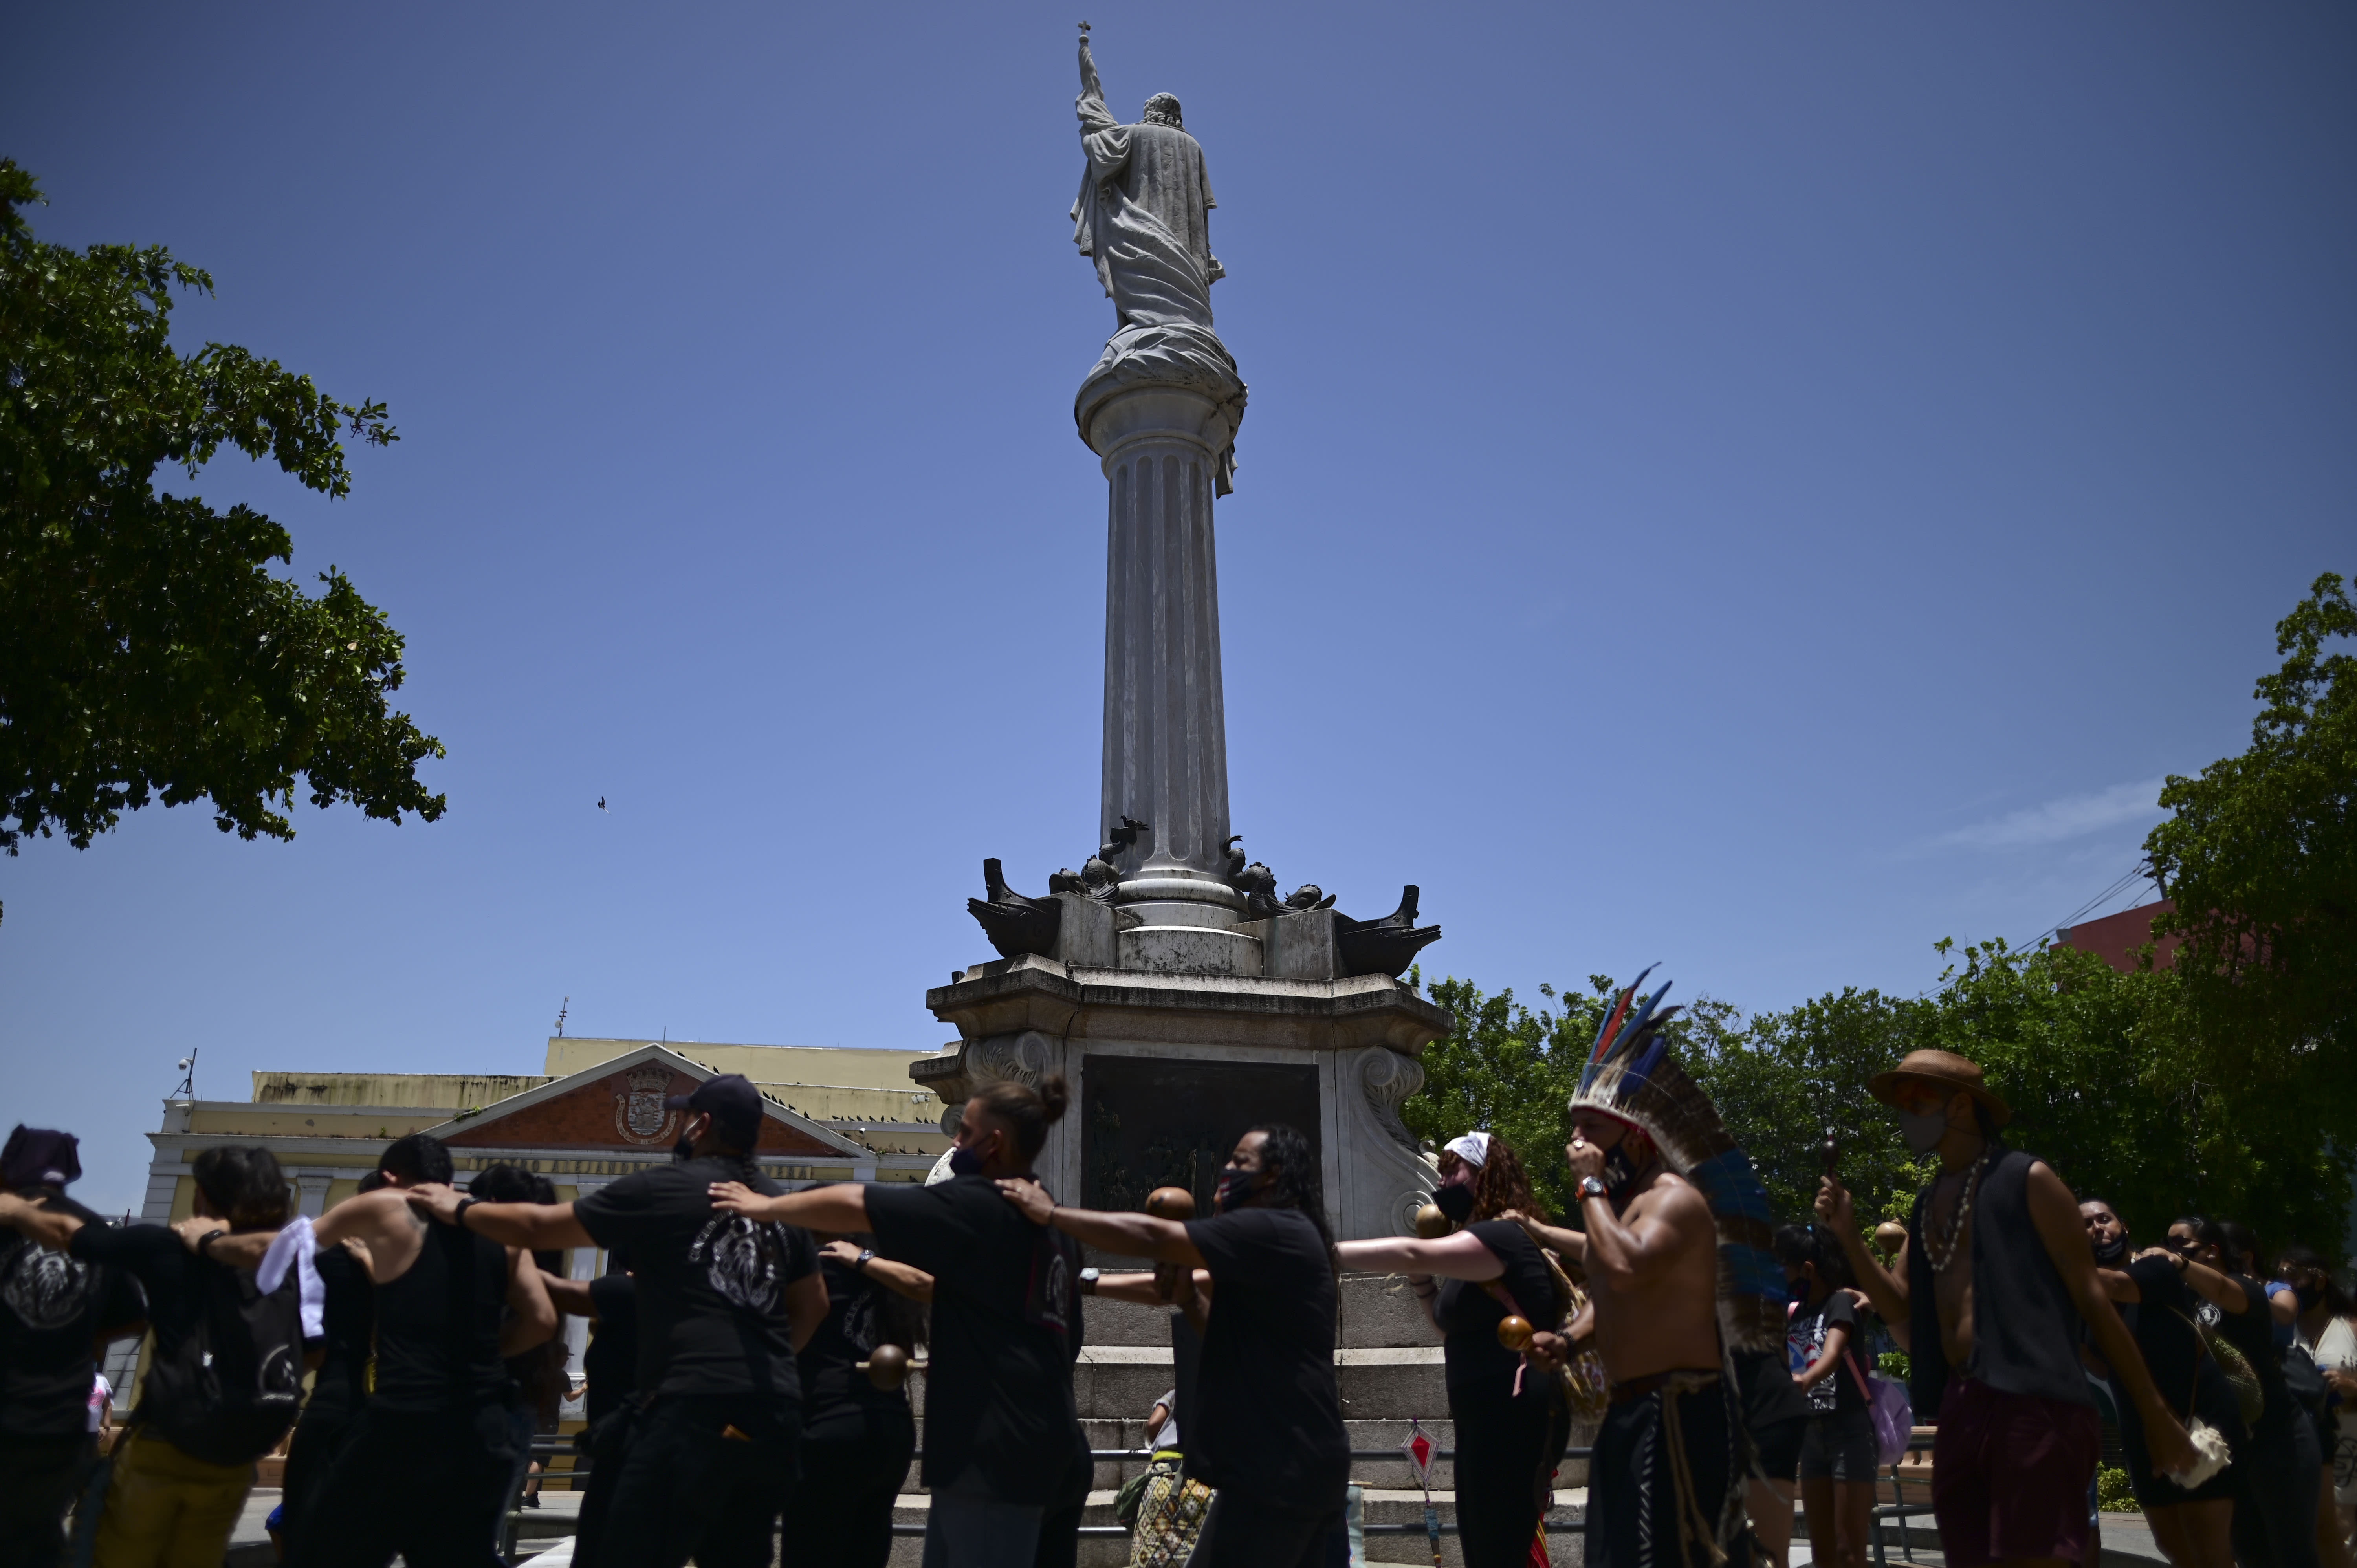 A group of activists surround a monument to Christopher Columbus demanding statues and street names commemorating symbols of colonial oppression be removed, in San Juan, Puerto Rico, Saturday, July 11, 2020. Dozens of activists marched through the historic part of Puerto Rico's capital on Saturday to demand that the U.S. territory's government start by removing statues, including those of explorer Christopher Columbus. (AP Photo/Carlos Giusti)